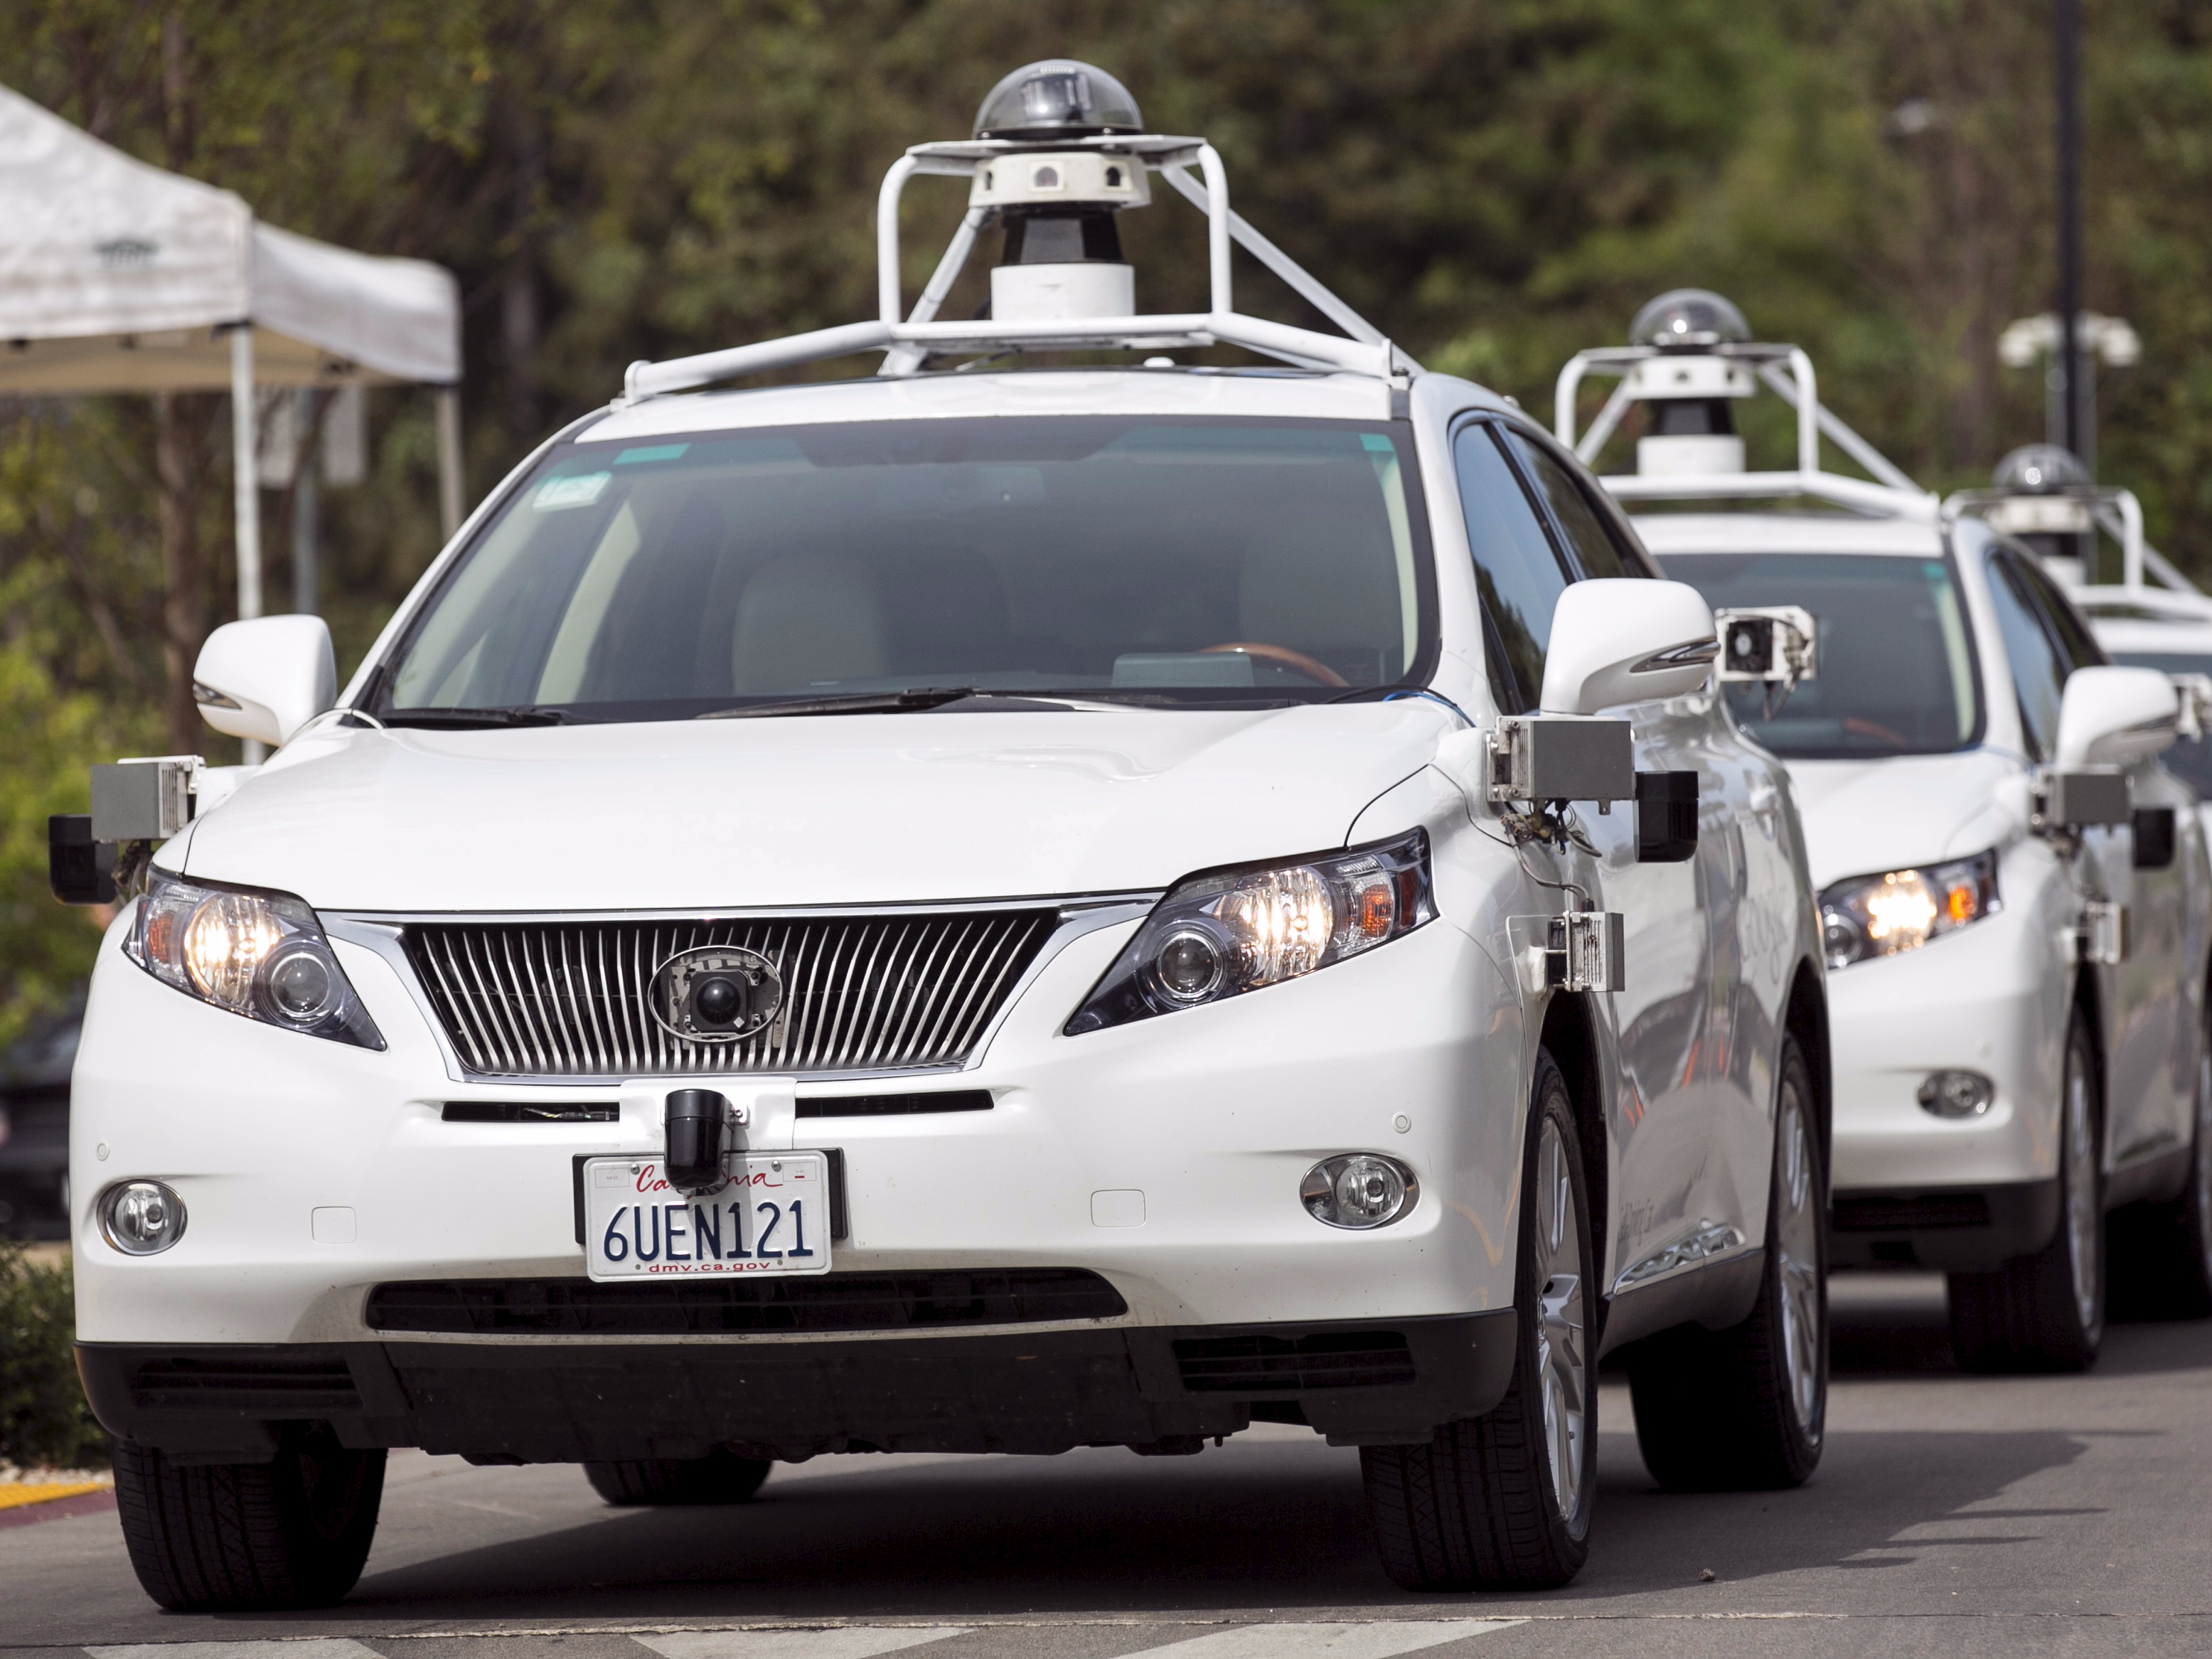 One of Google's self-driving cars was involved in an accident that sent its driver to the hospital